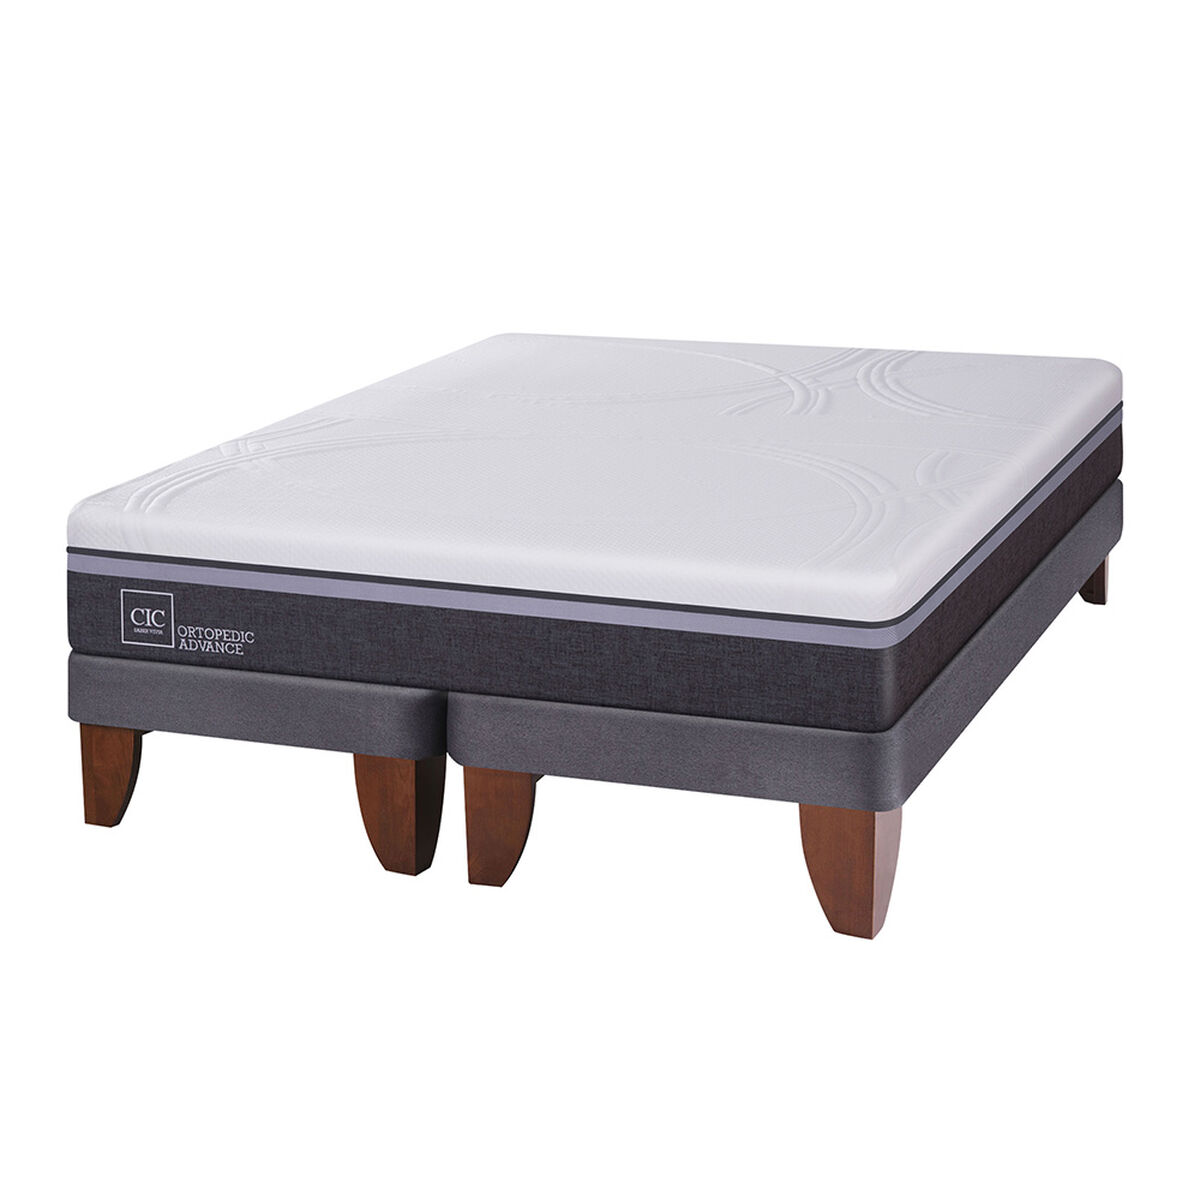 Cama Europea Super King Div Ortopedic Advance